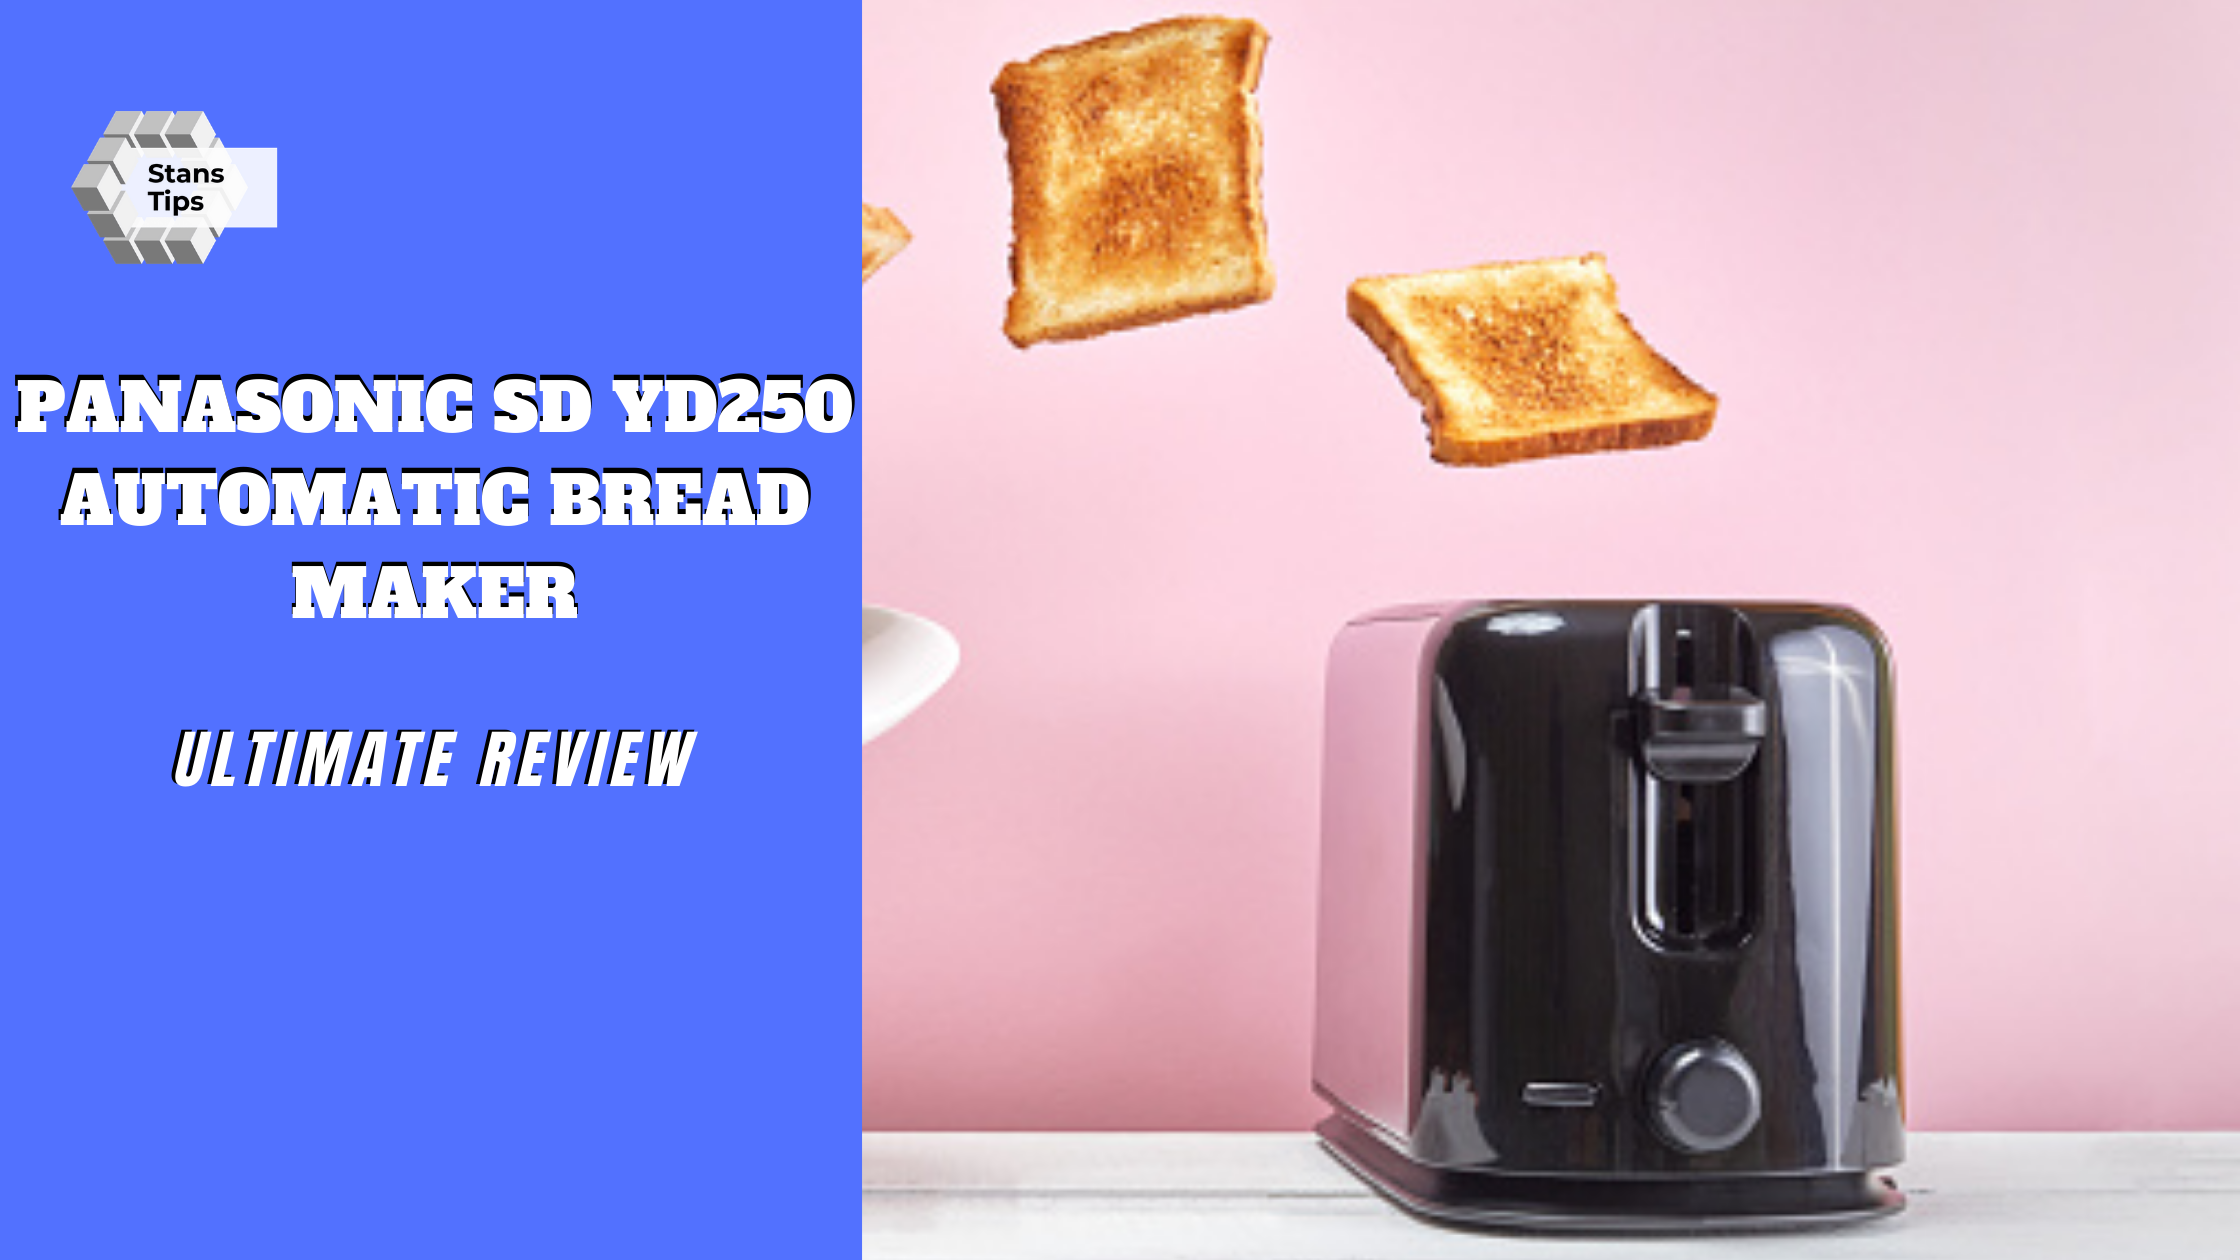 Panasonic sd yd250 automatic bread maker review in 2021